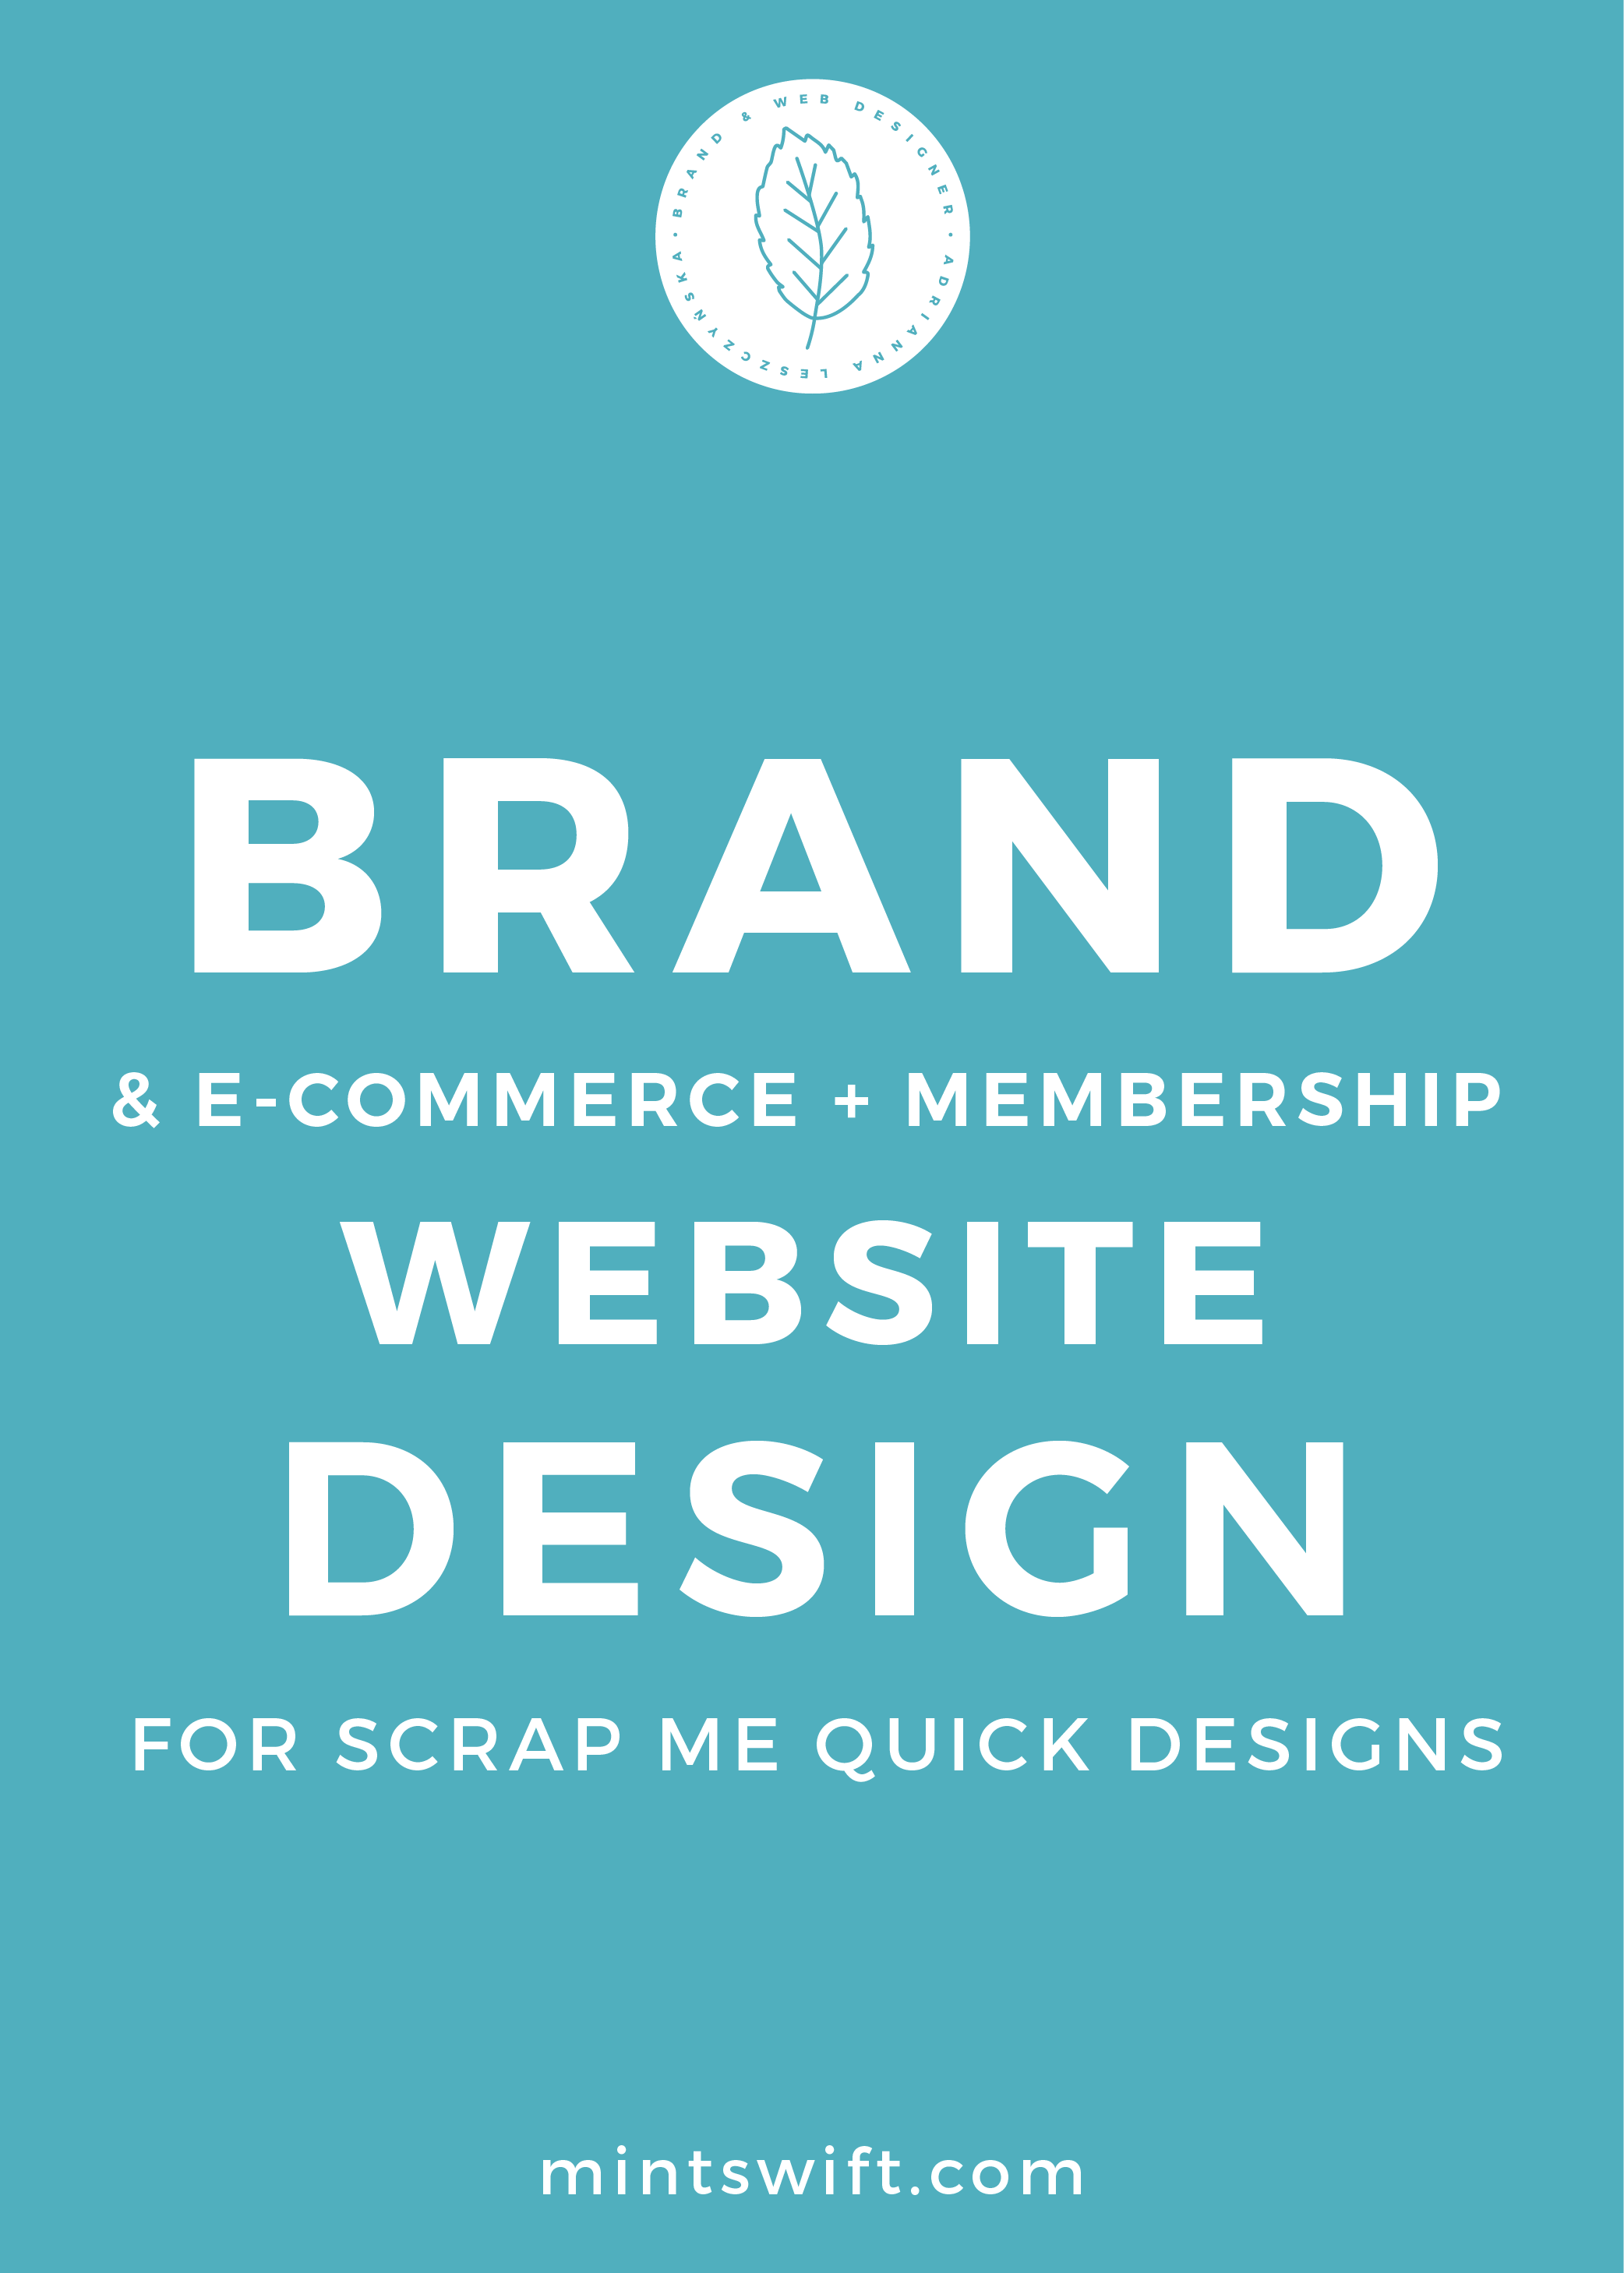 Brand & E-commerce & Membership Website Design for Scrap Me Quick Designs - MintSwift